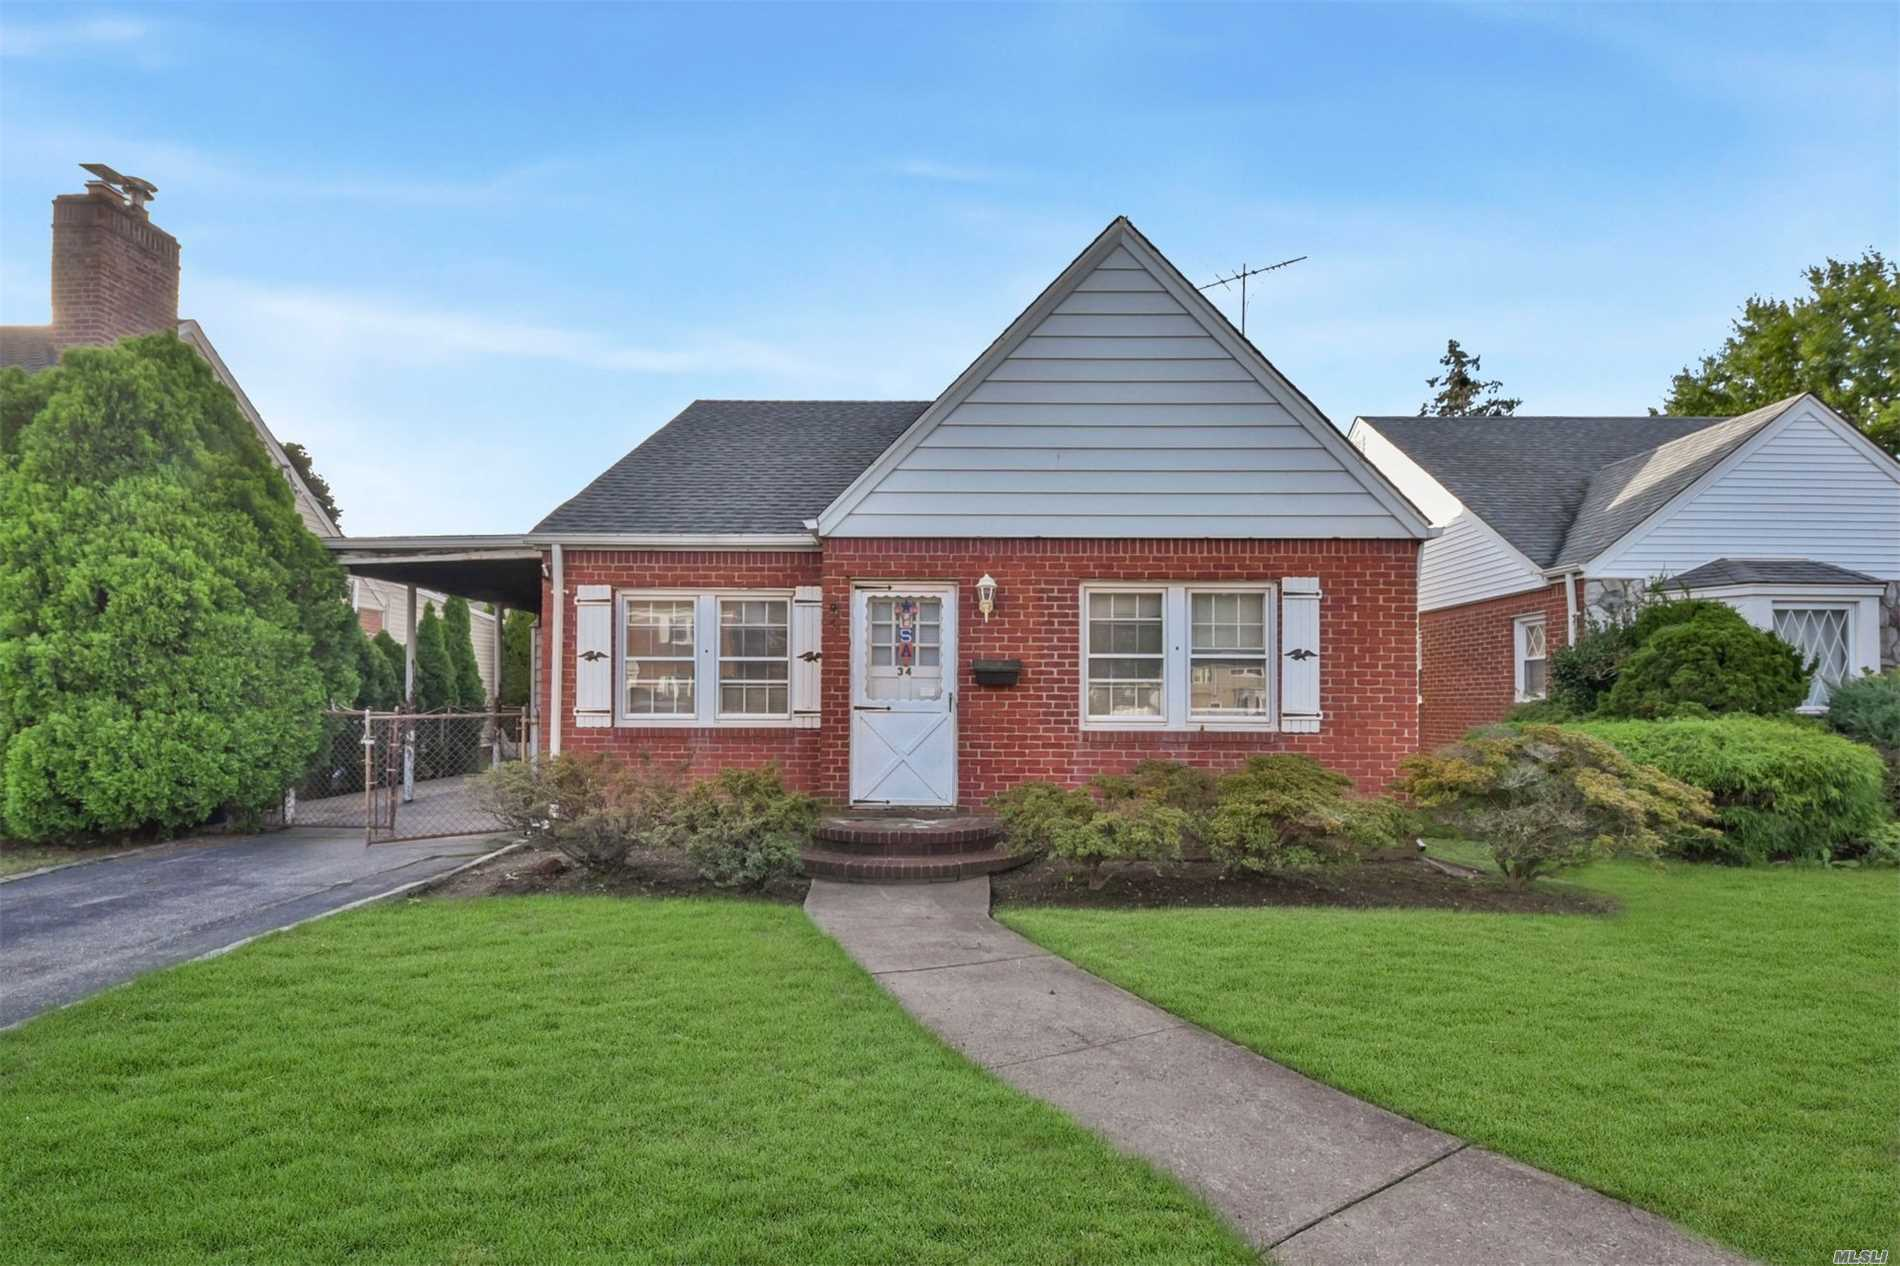 Brick Cape With Rear Dormer Located In The Manor Section Of New Hyde Park. This Home Features Living Room, Formal Dining Room, Kit, 5 Bedrooms, 2 Full Baths, Fully Fenced Private Yard. Close To Schools, Shopping, Restaurants & Transportation.